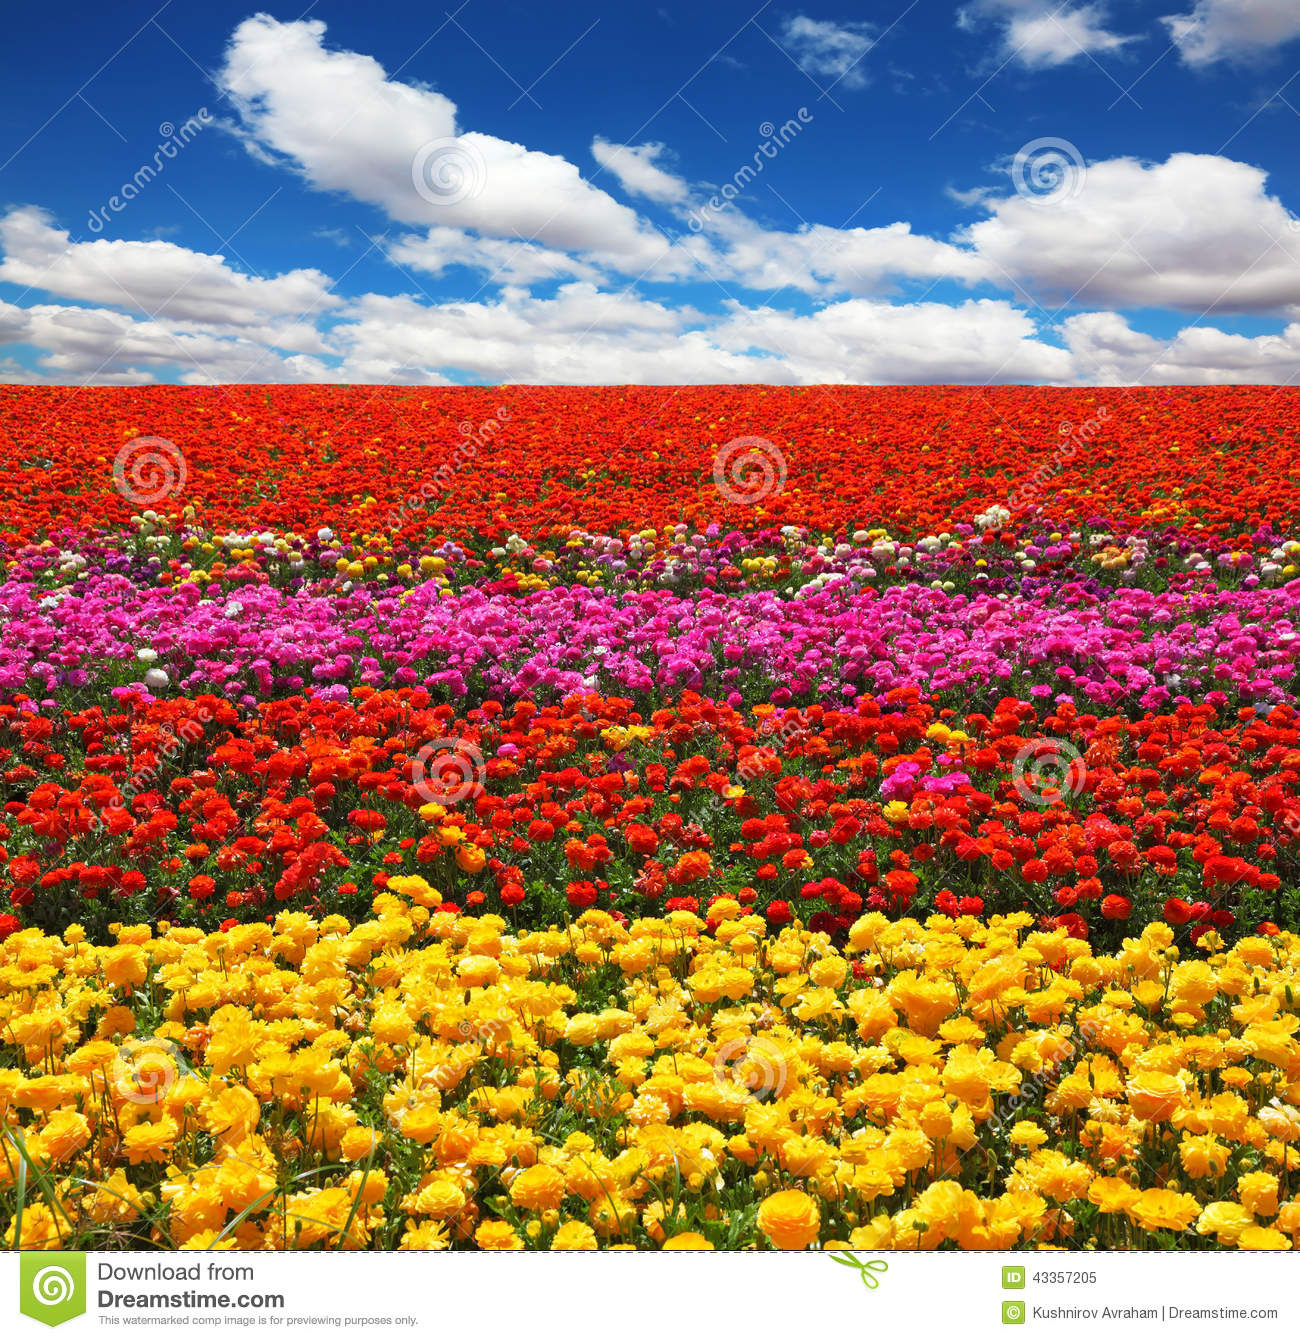 bright red flowers field - photo #25